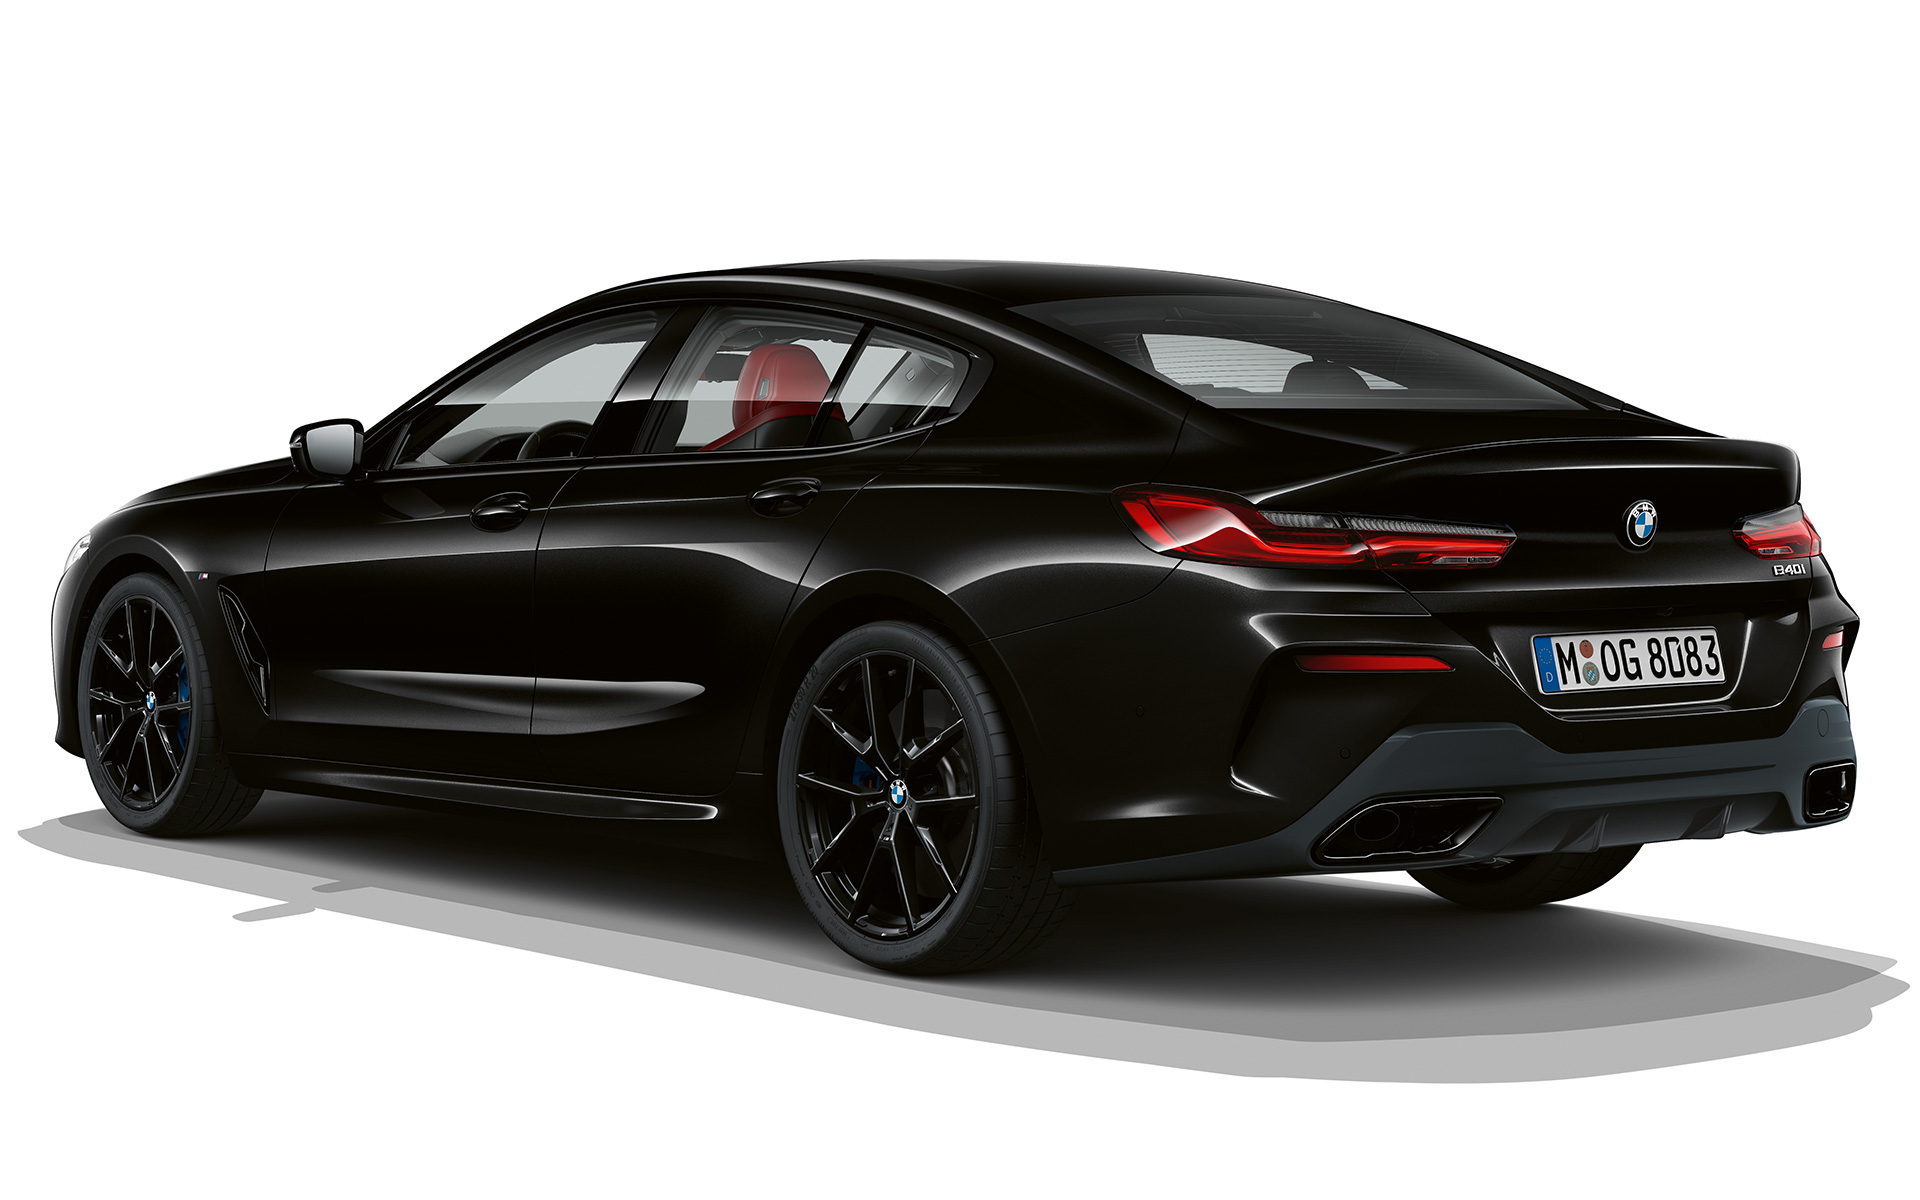 BMW 8 Serie Gran Coupé, Dark Seduction driekwart achteraanzicht